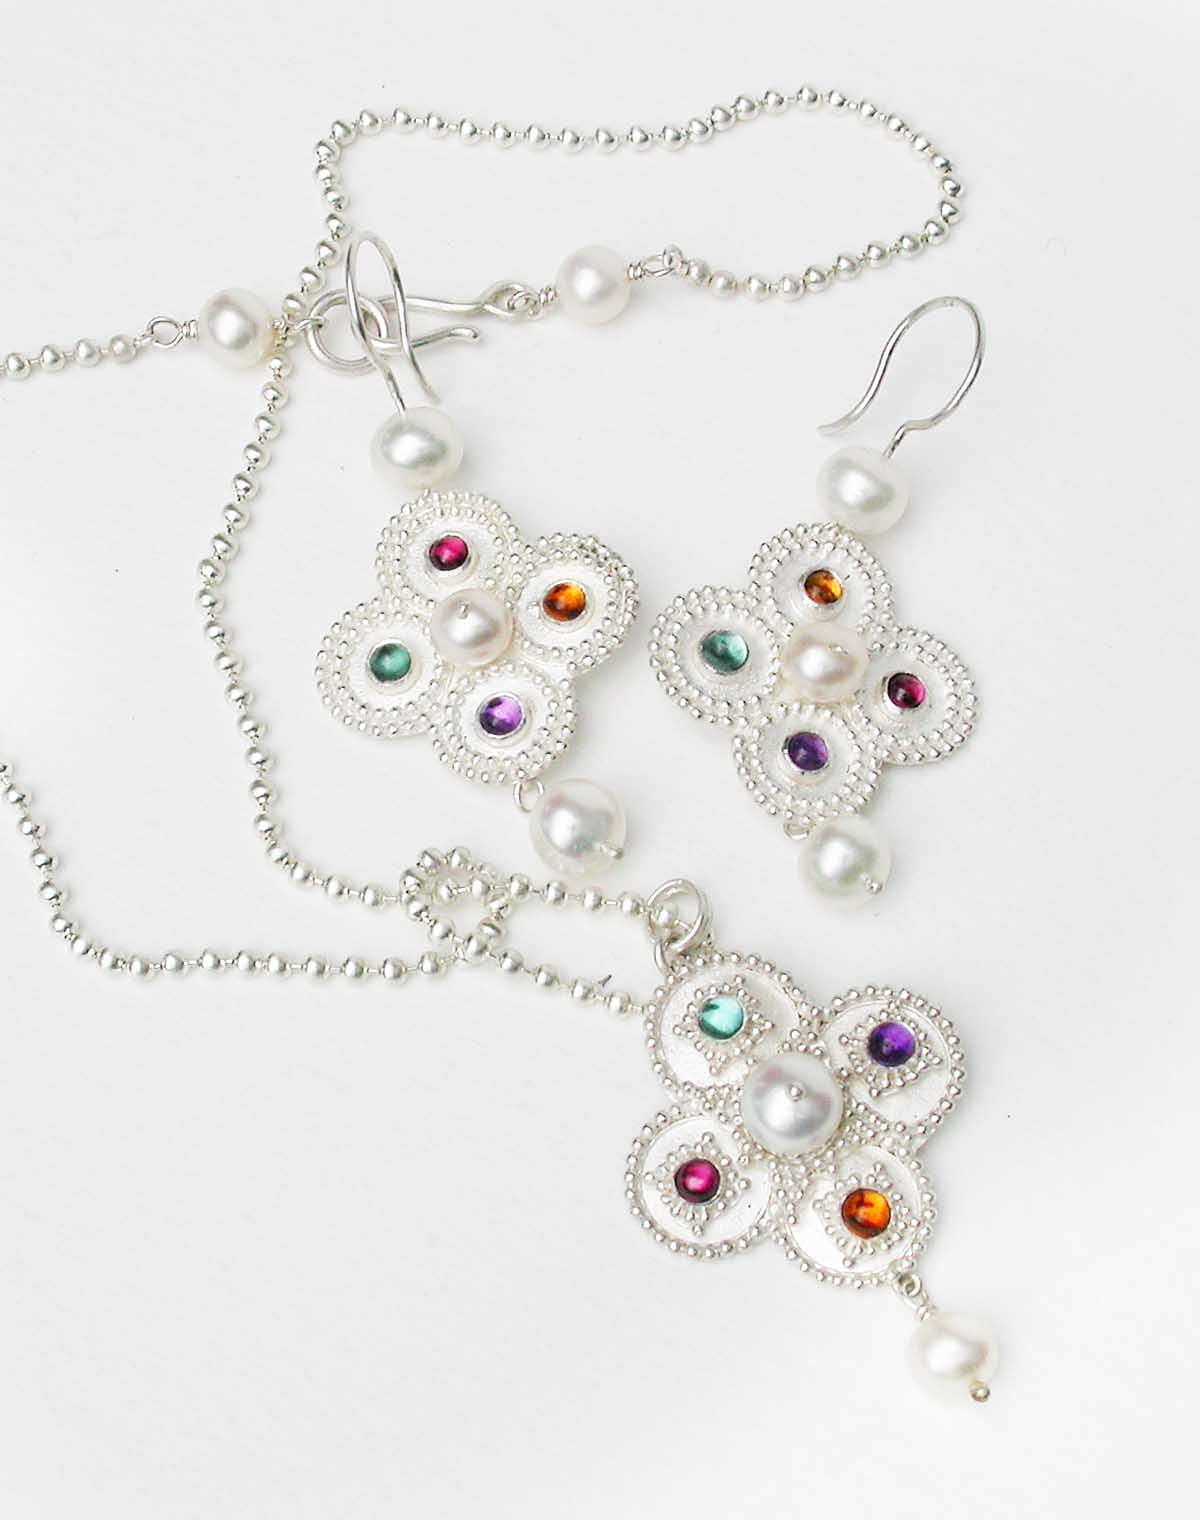 Silver necklace and earrings